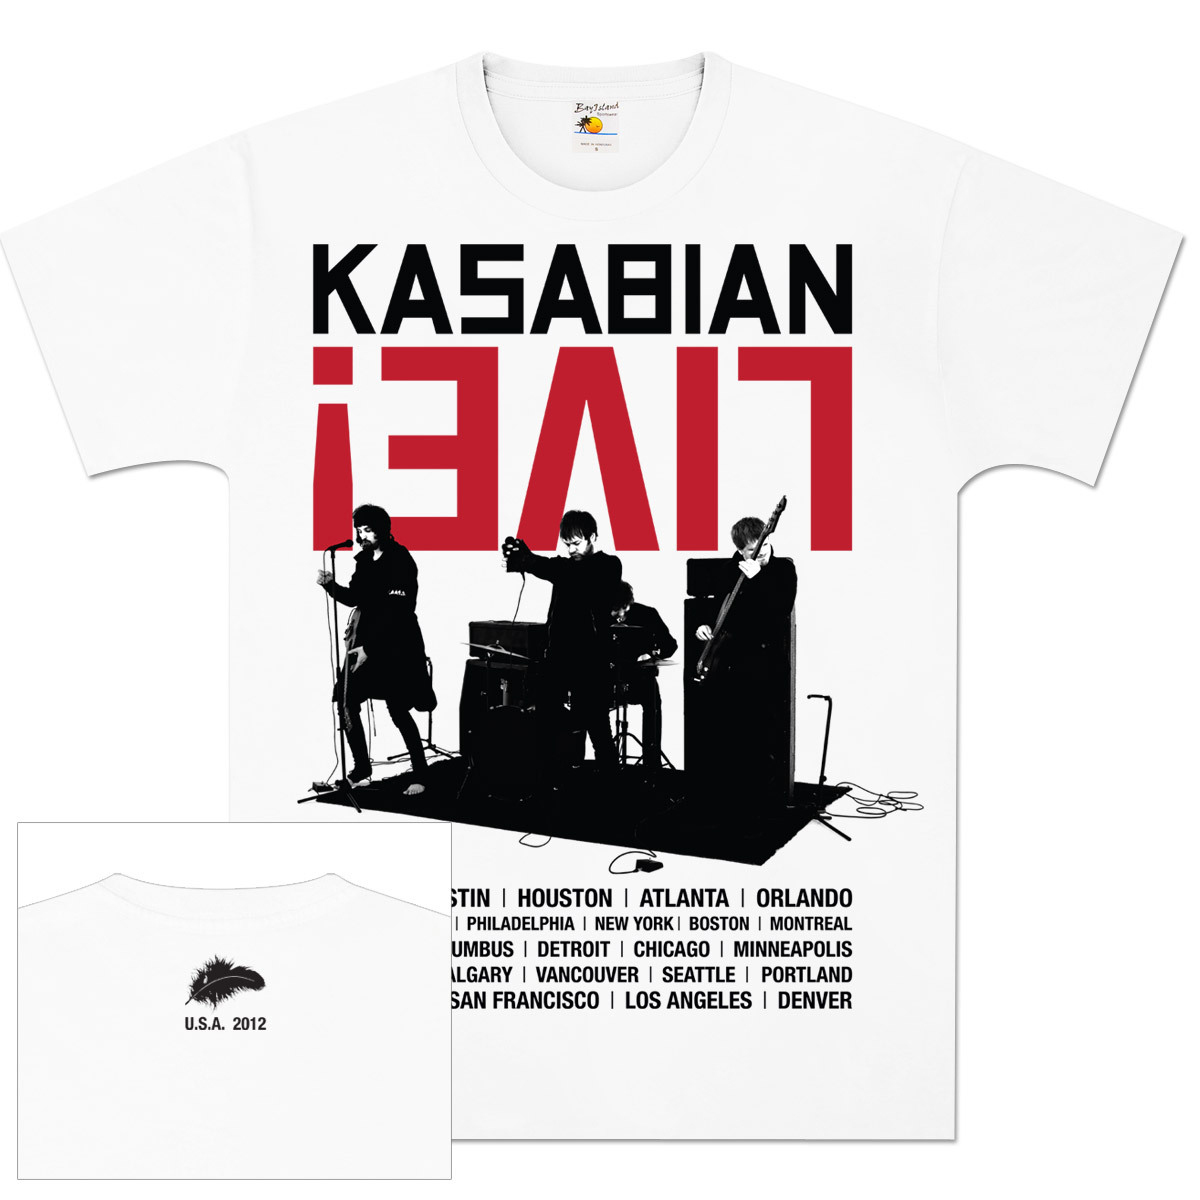 Kasabian Live Band Tour T-Shirt